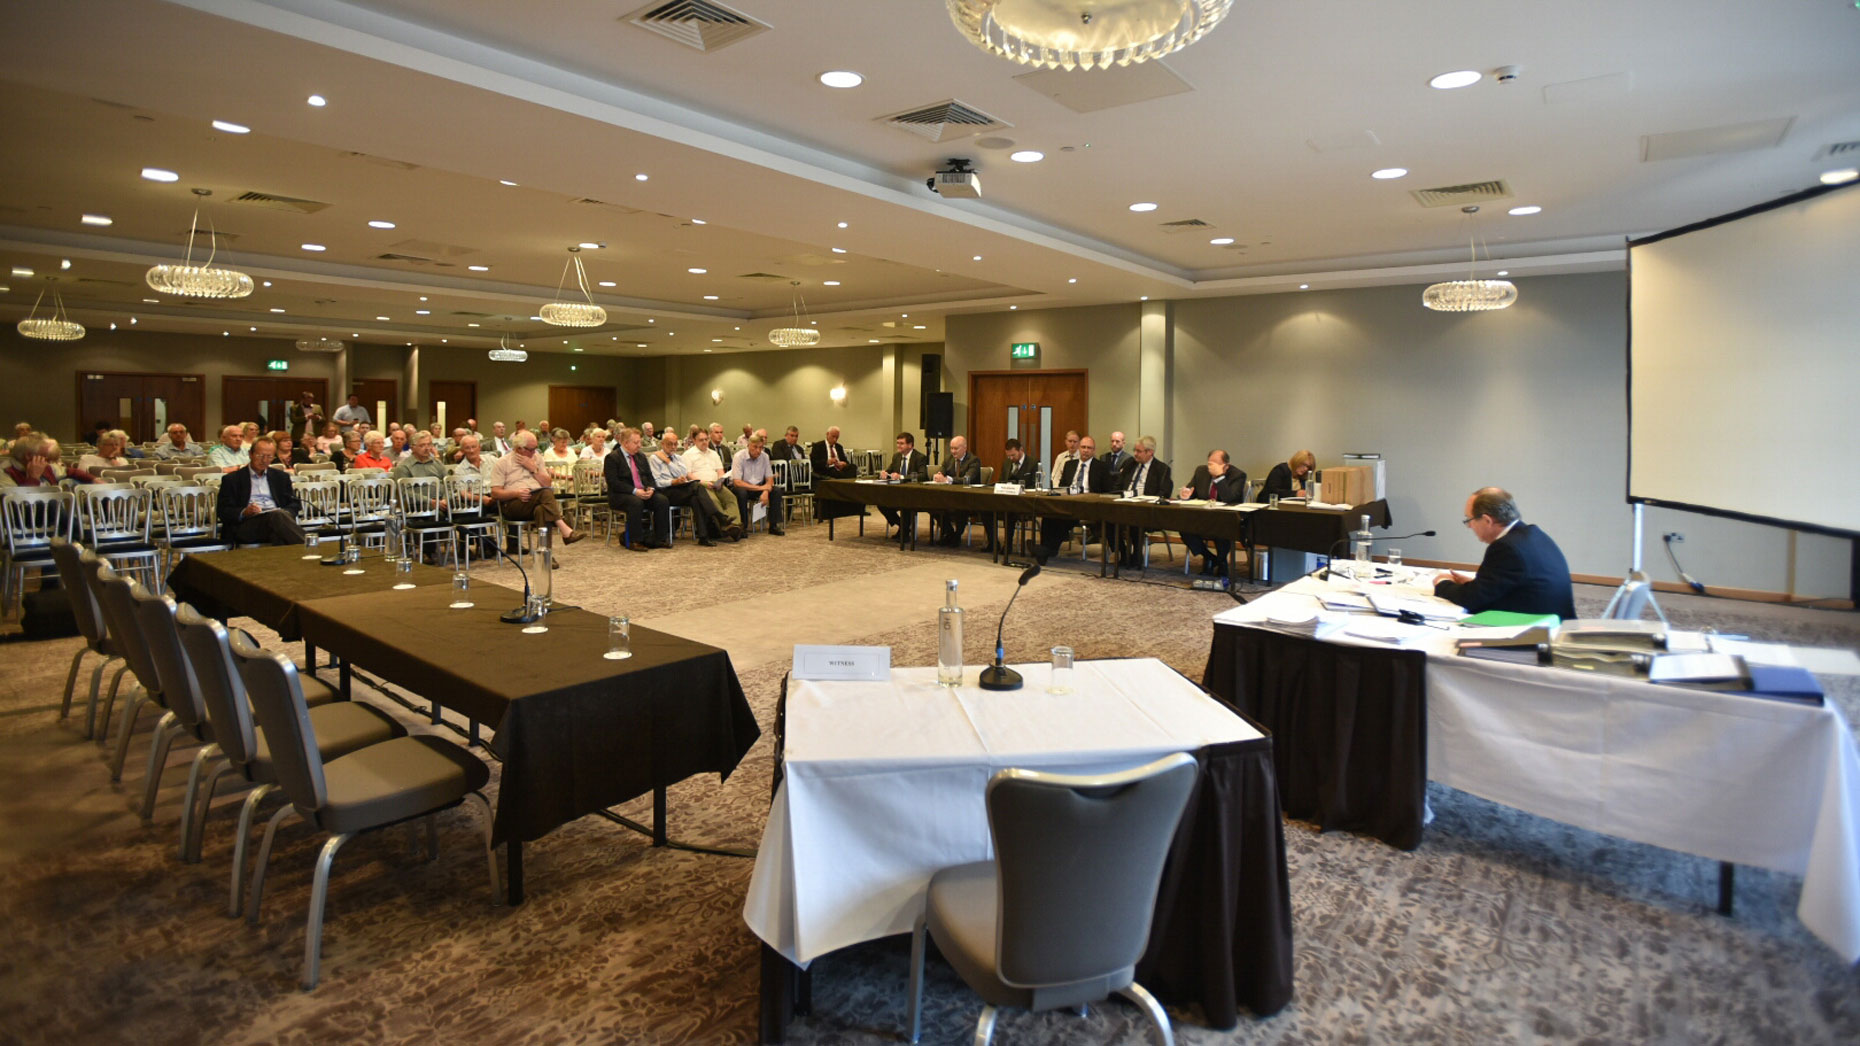 The public inquiry is taking place over two weeks at DoubleTree by Hilton hotel in Lincoln. Photo: Steve Smailes for The Lincolnite